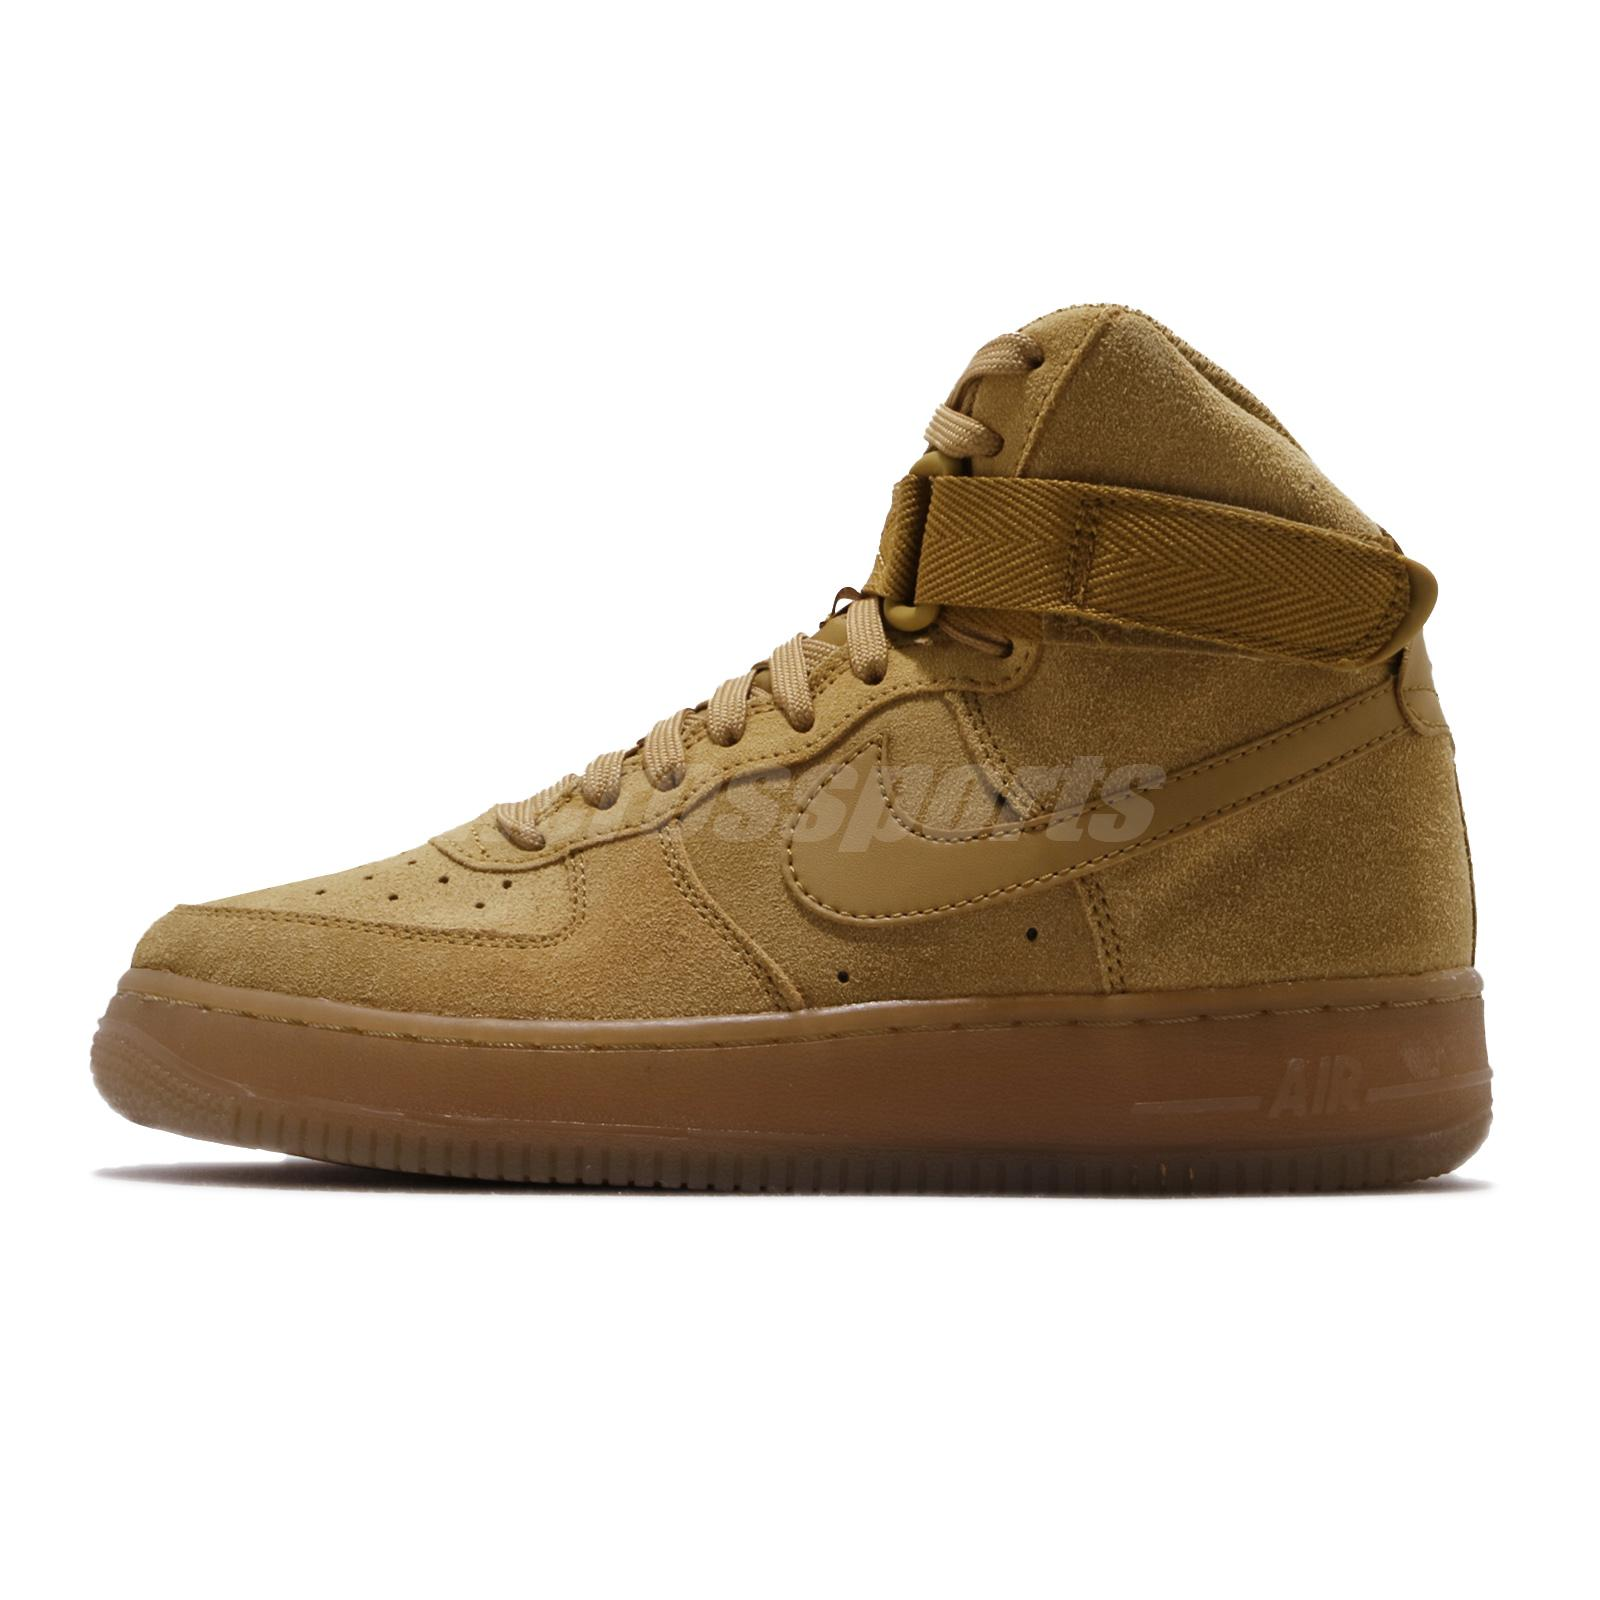 Nike Air Force 1 High Low Wheat Flax Mens Womens Youth Classic Shoes Pick 1